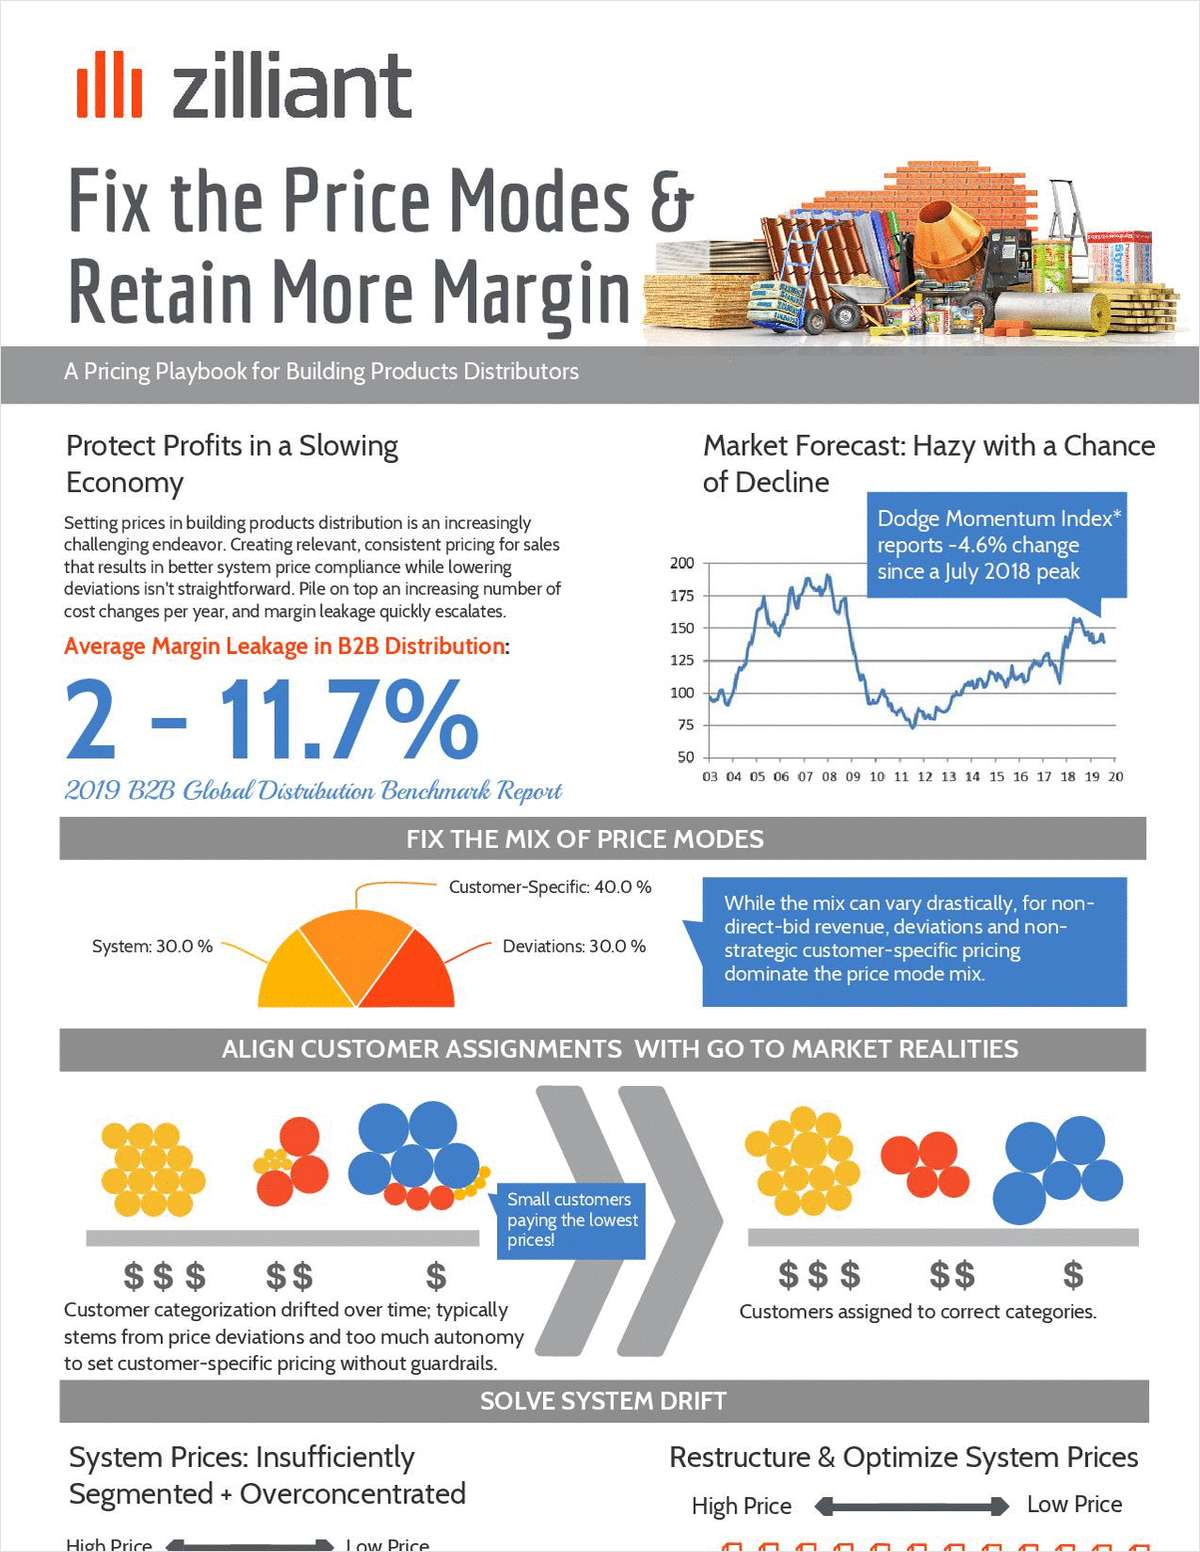 Fix the Price Modes to Retain More Margin in Building Products Distribution